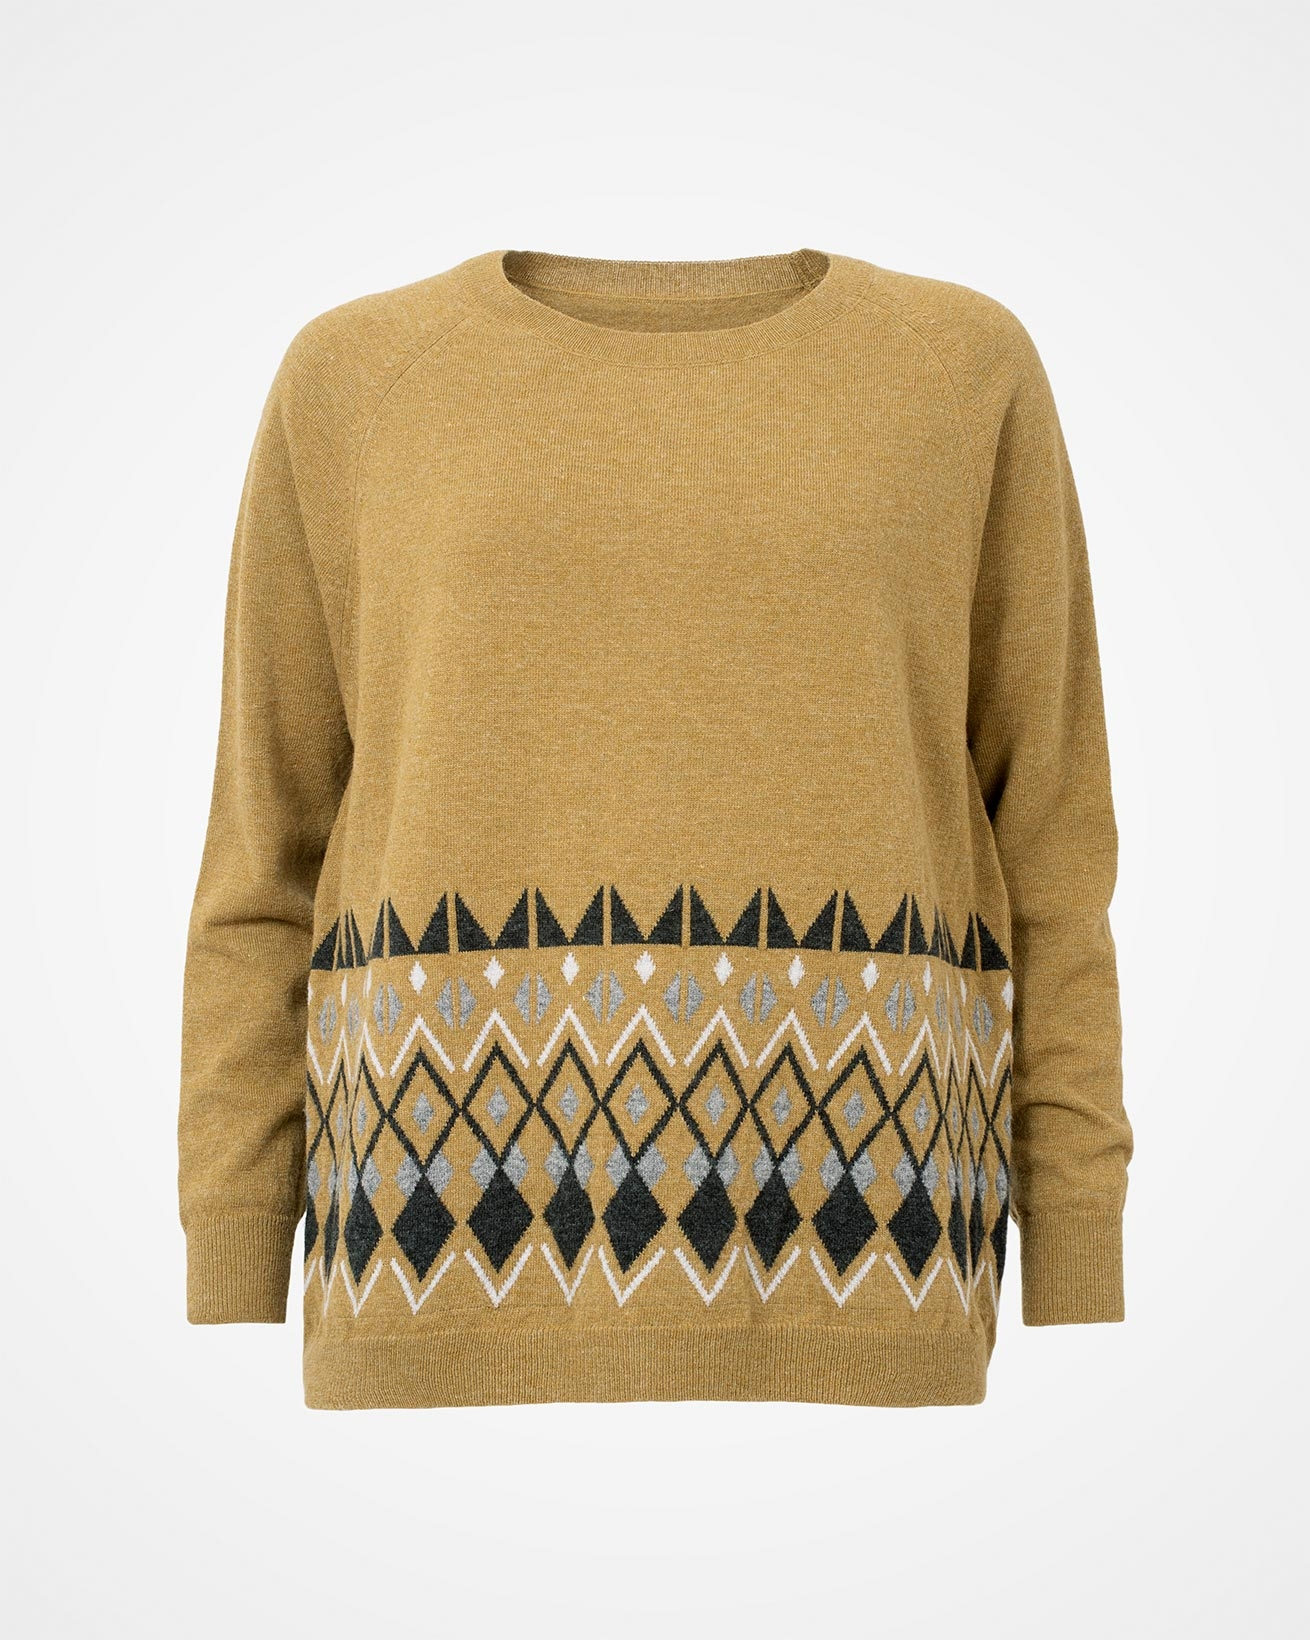 7708_hem-placement_crew-neck-jumper_green ochre_front.jpg